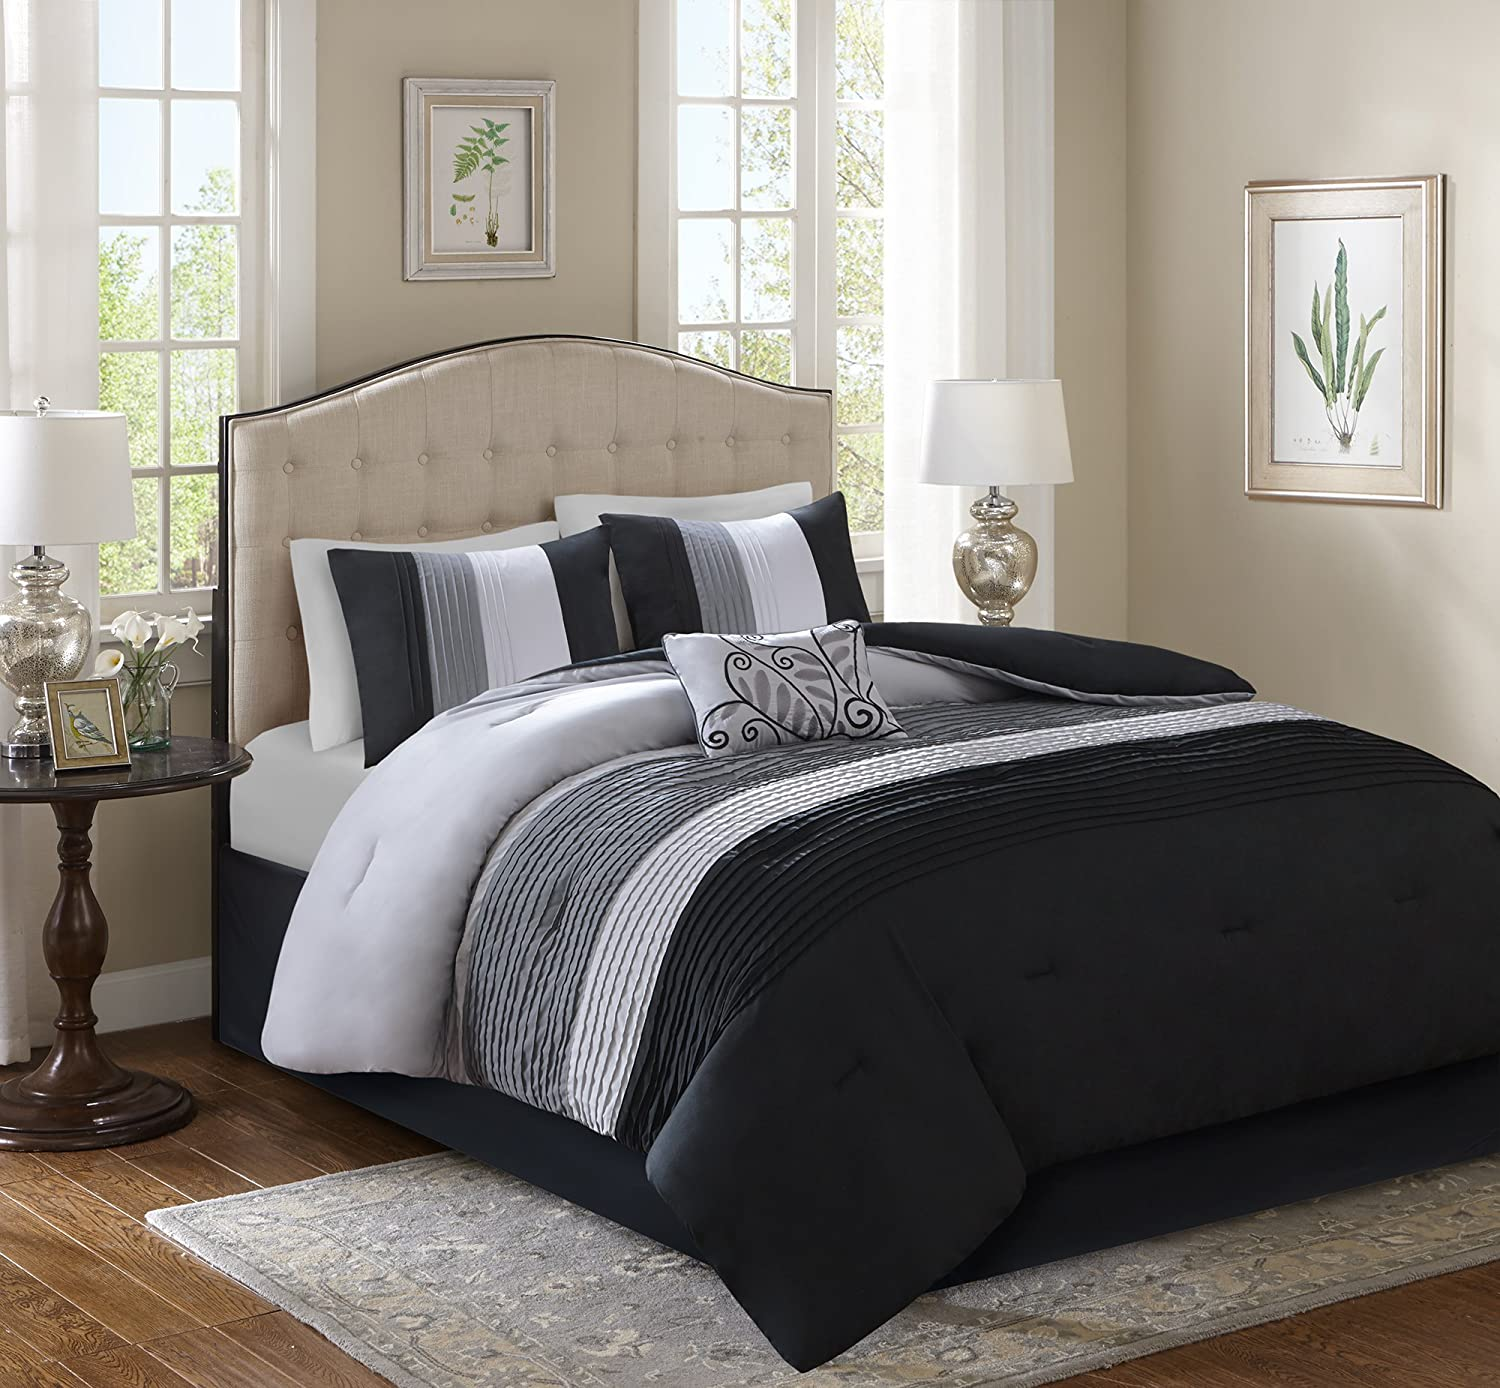 Comfort Spaces - Windsor Comforter Set- 5 Piece